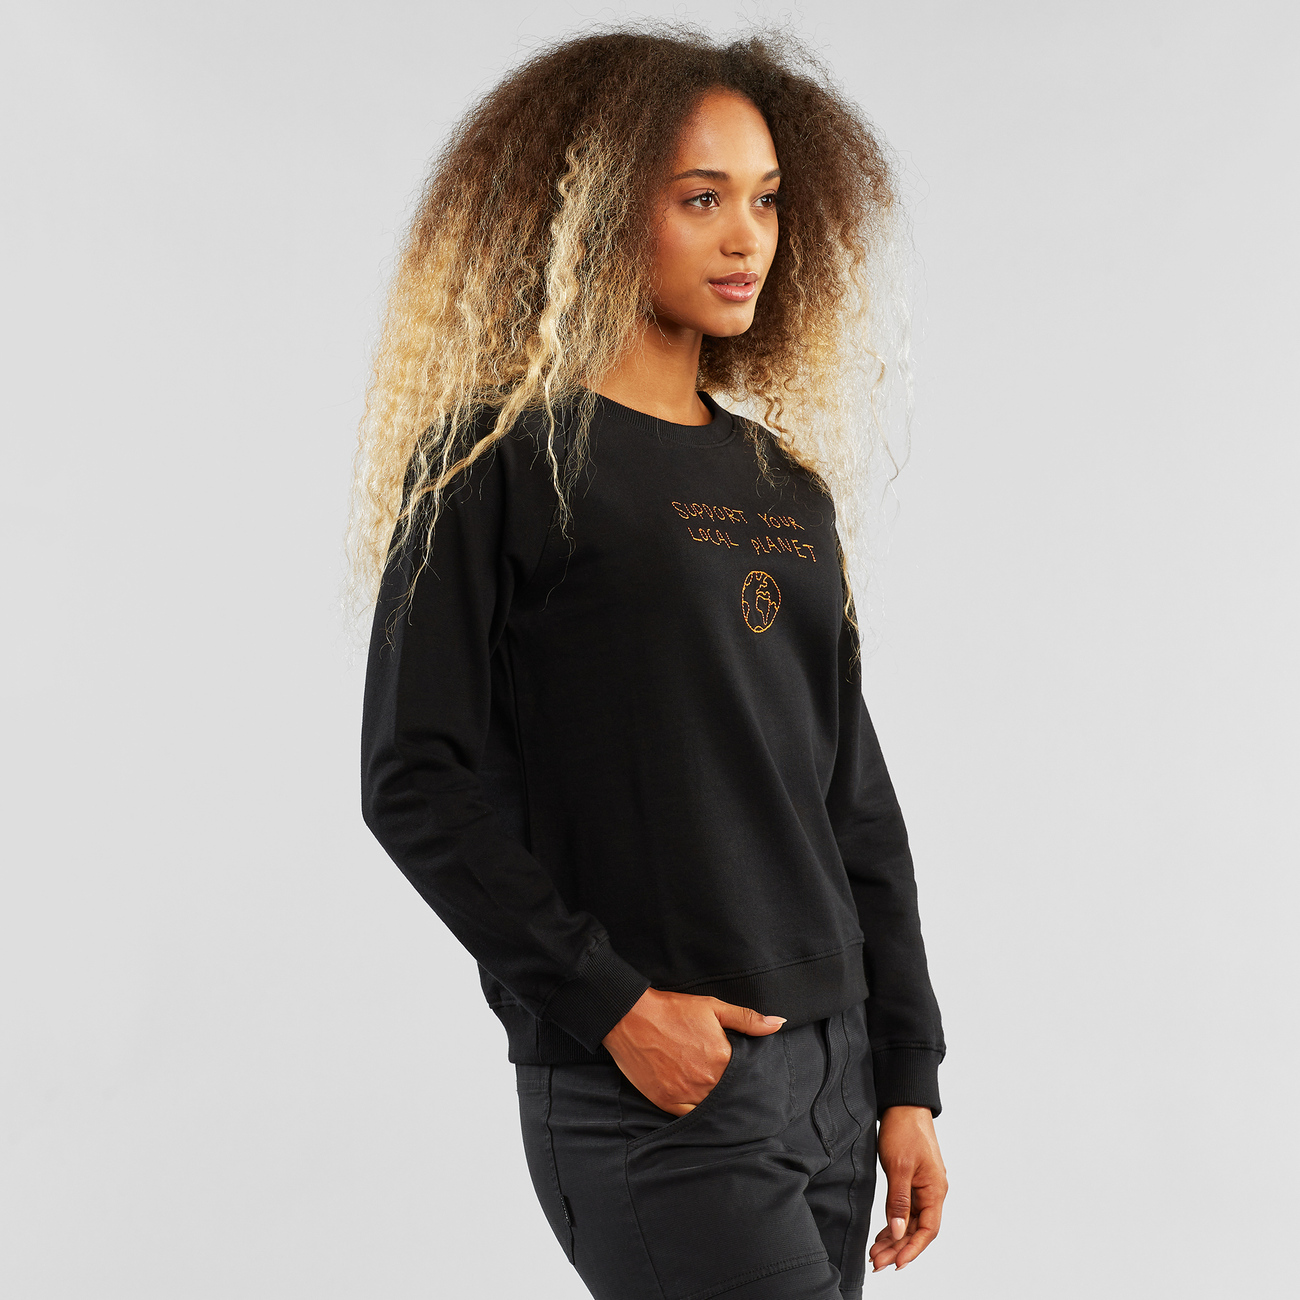 Sweatshirt Ystad Raglan Local Planet Black